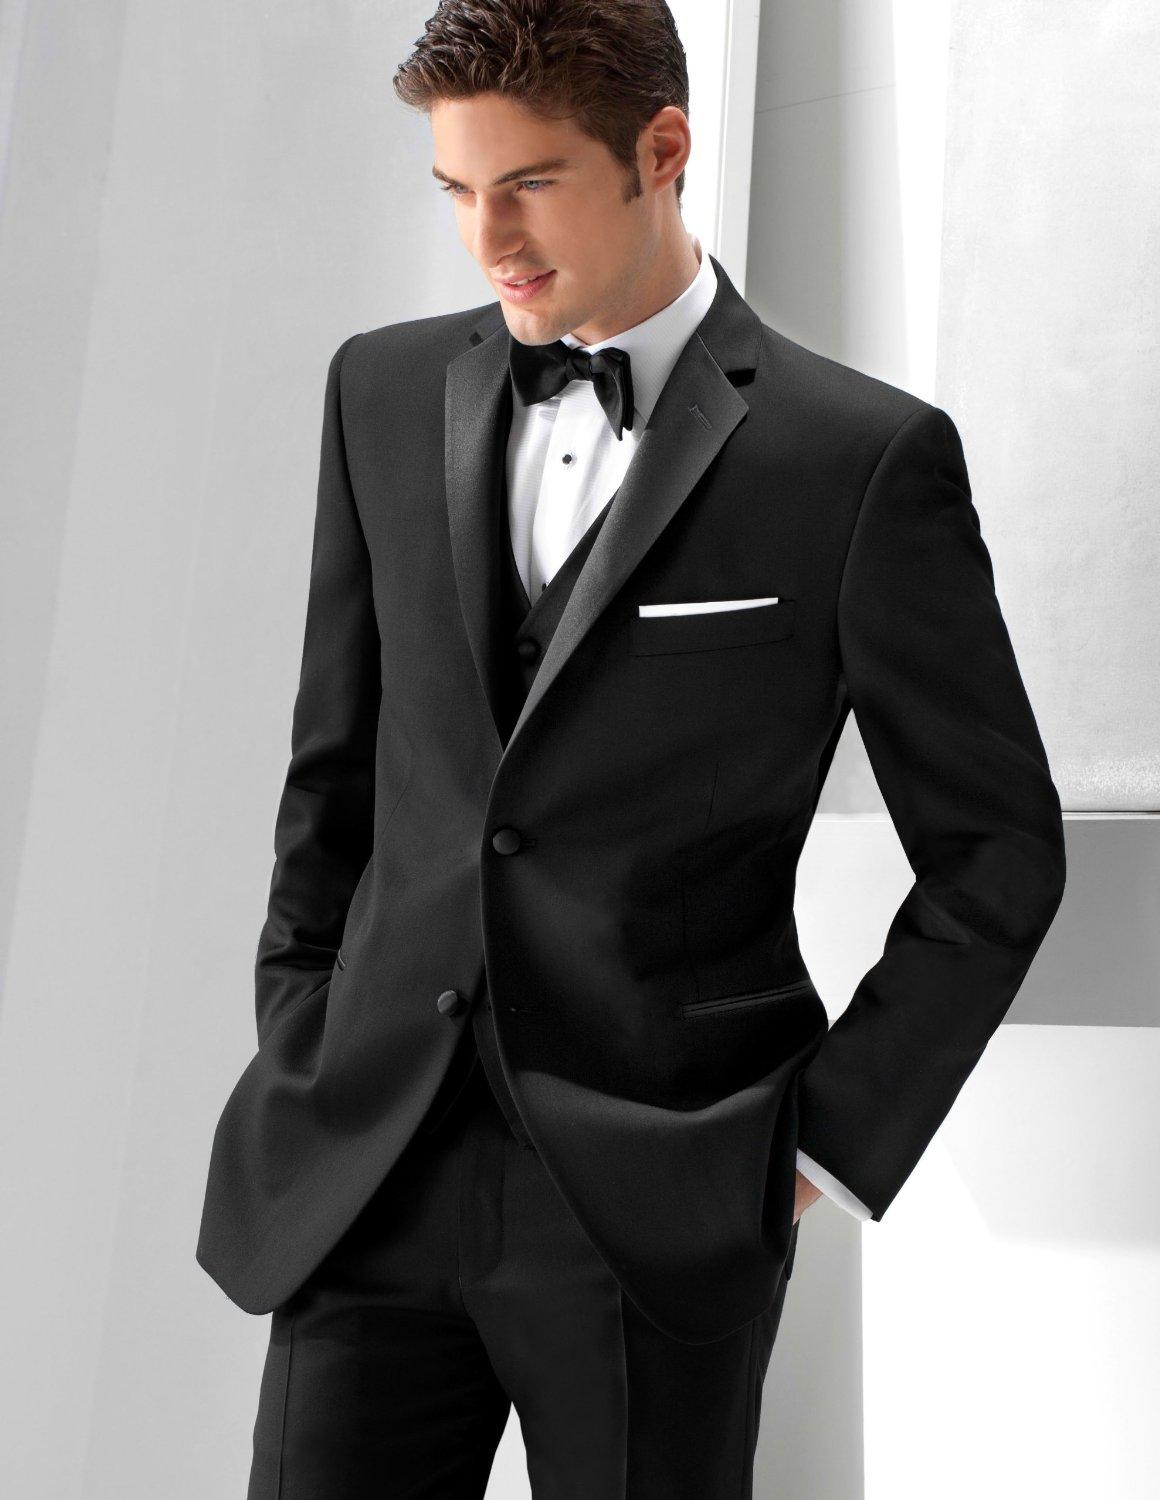 Asestilo store prom tuxedos for men for Black tuxedo shirt for men